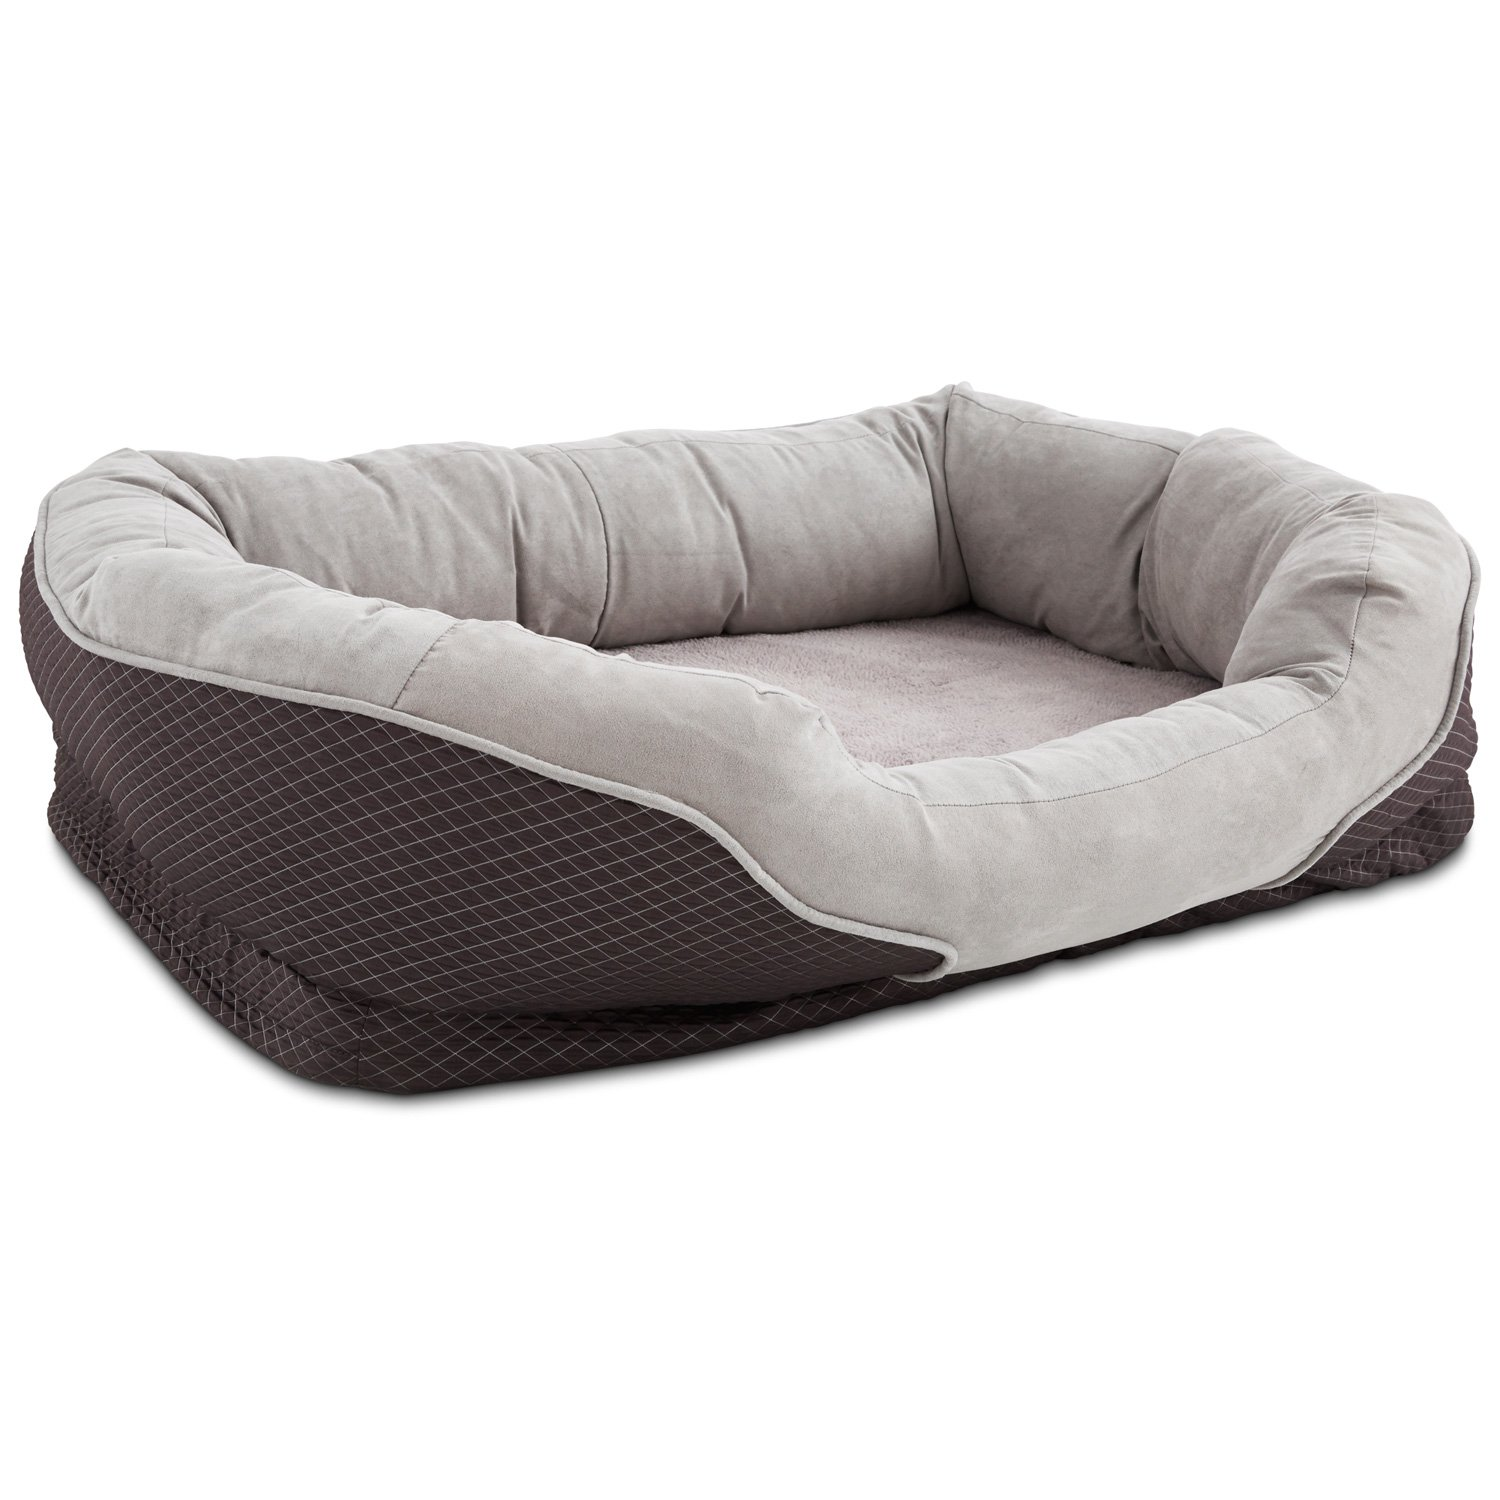 Large Grey Dogs Bed